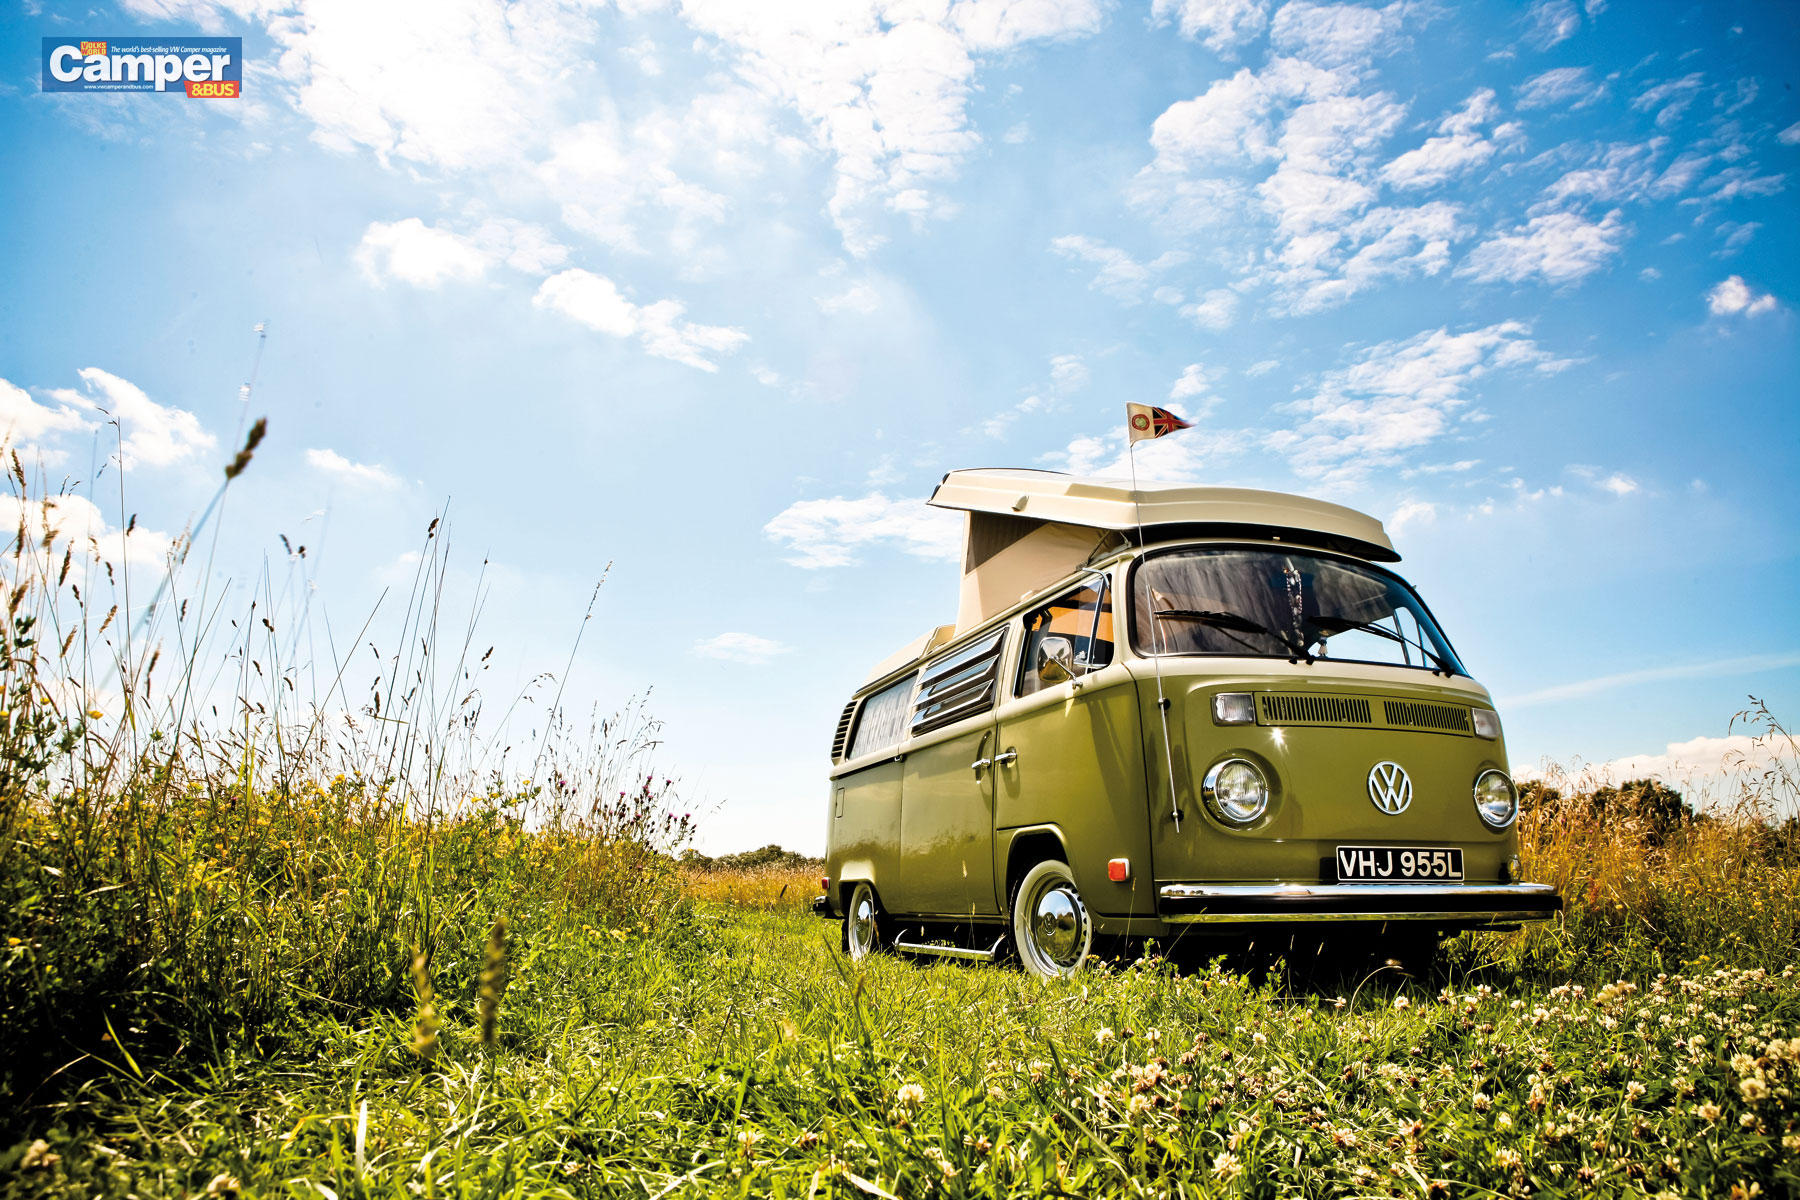 CamperBus wallpaper from the October 2012 issue   VW Camper and Bus 1800x1200